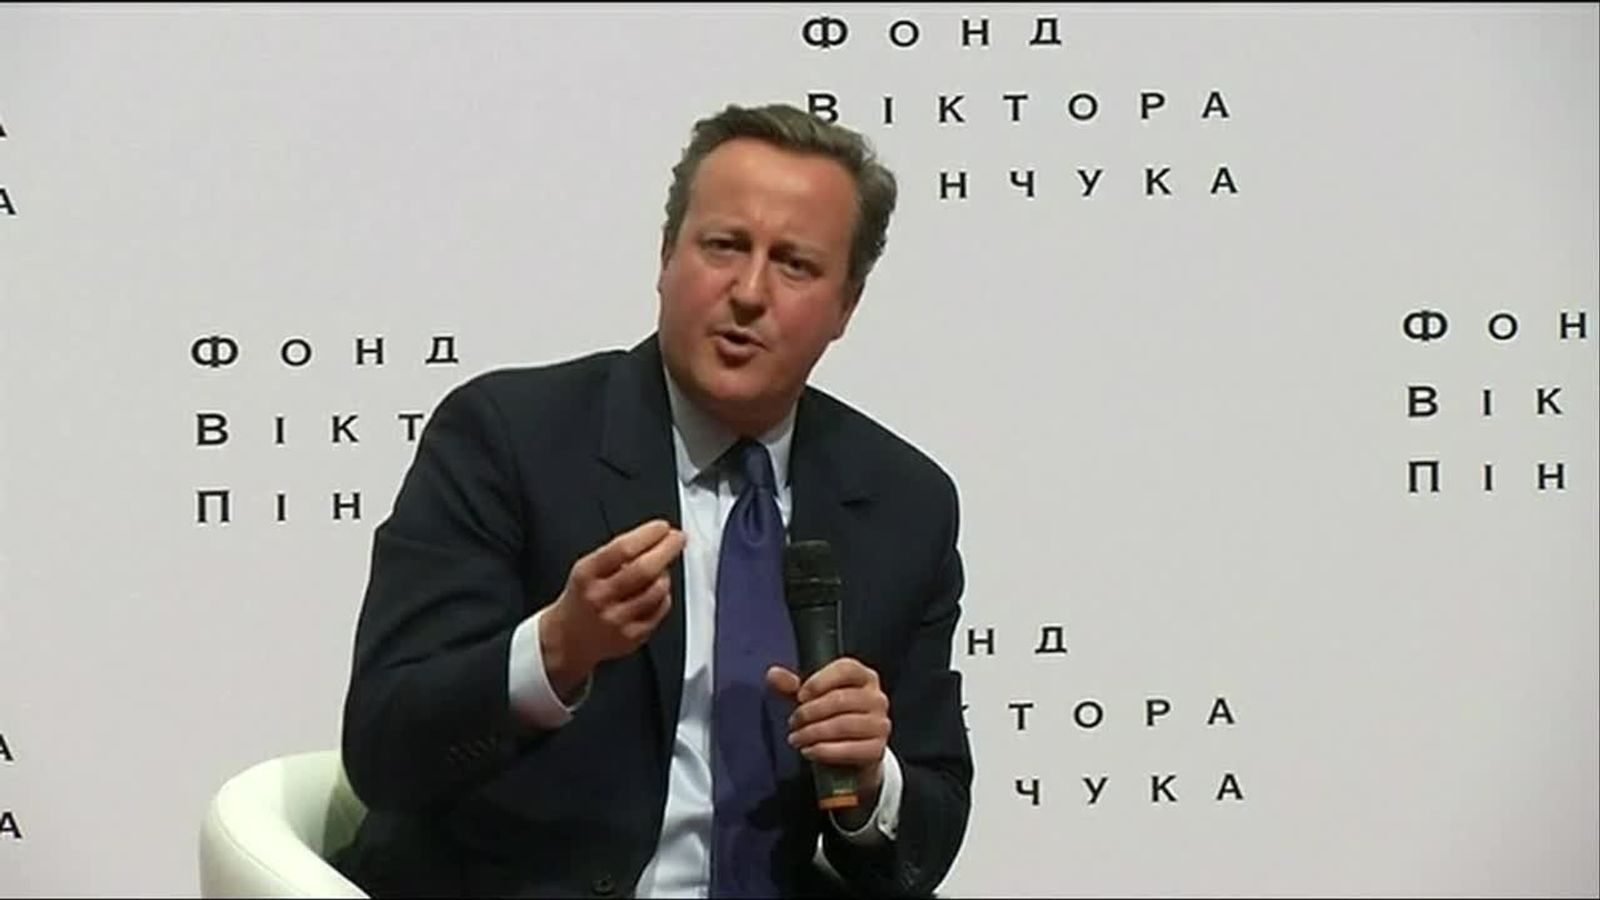 David Cameron reflects on the UK's attitudes about the European Union